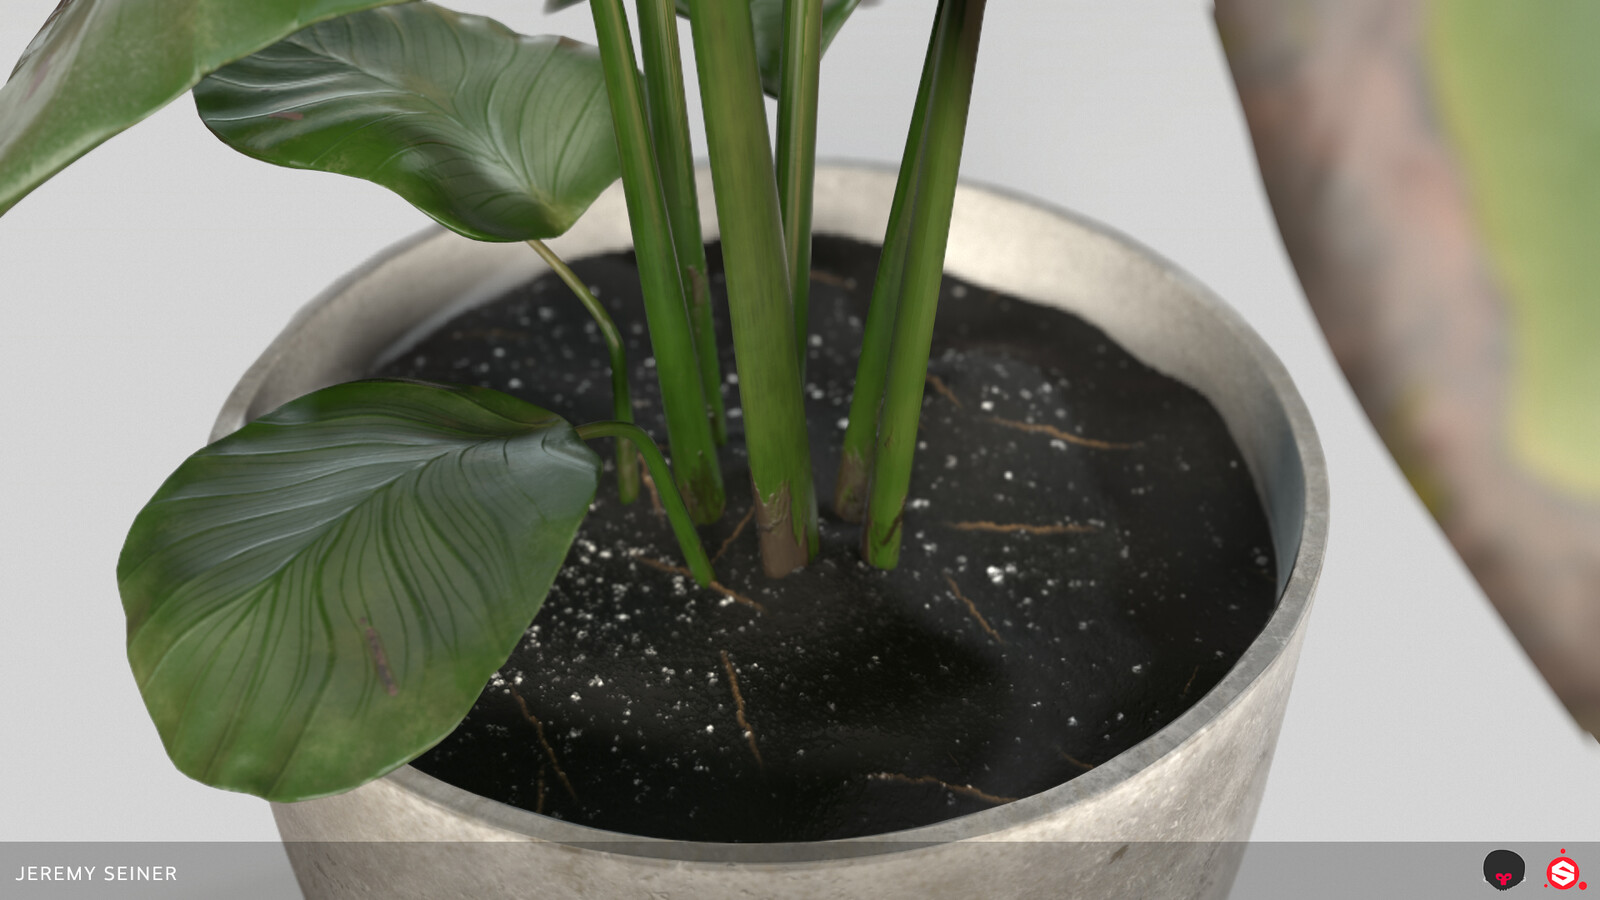 Closeup of base with soil and stems. Soil material created in Substance Designer.